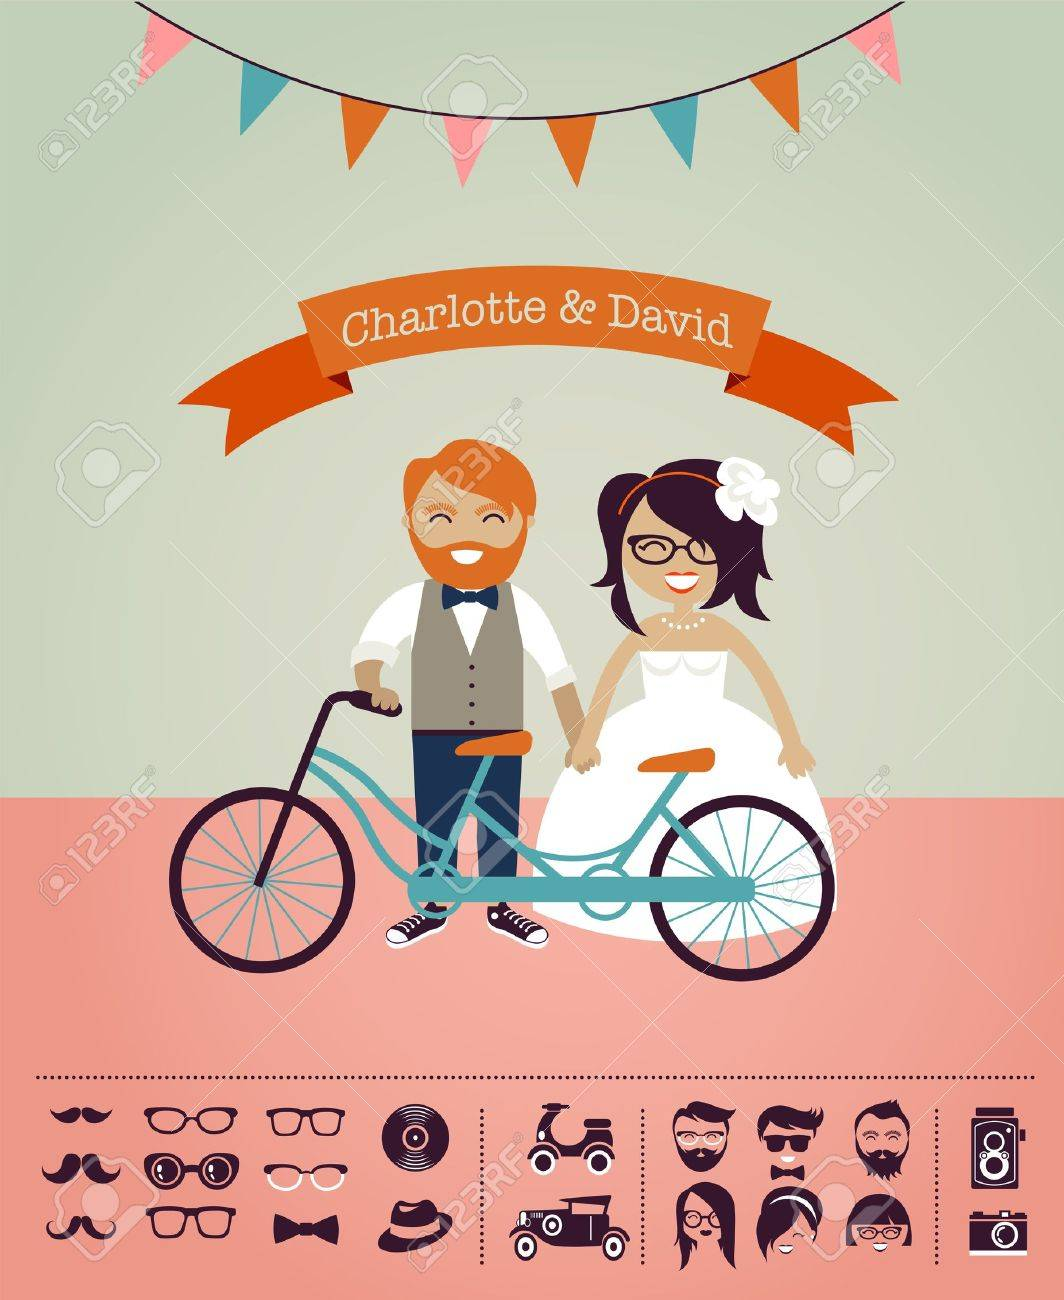 Hipster Wedding Design Your Own Invitation Card Stock Photo